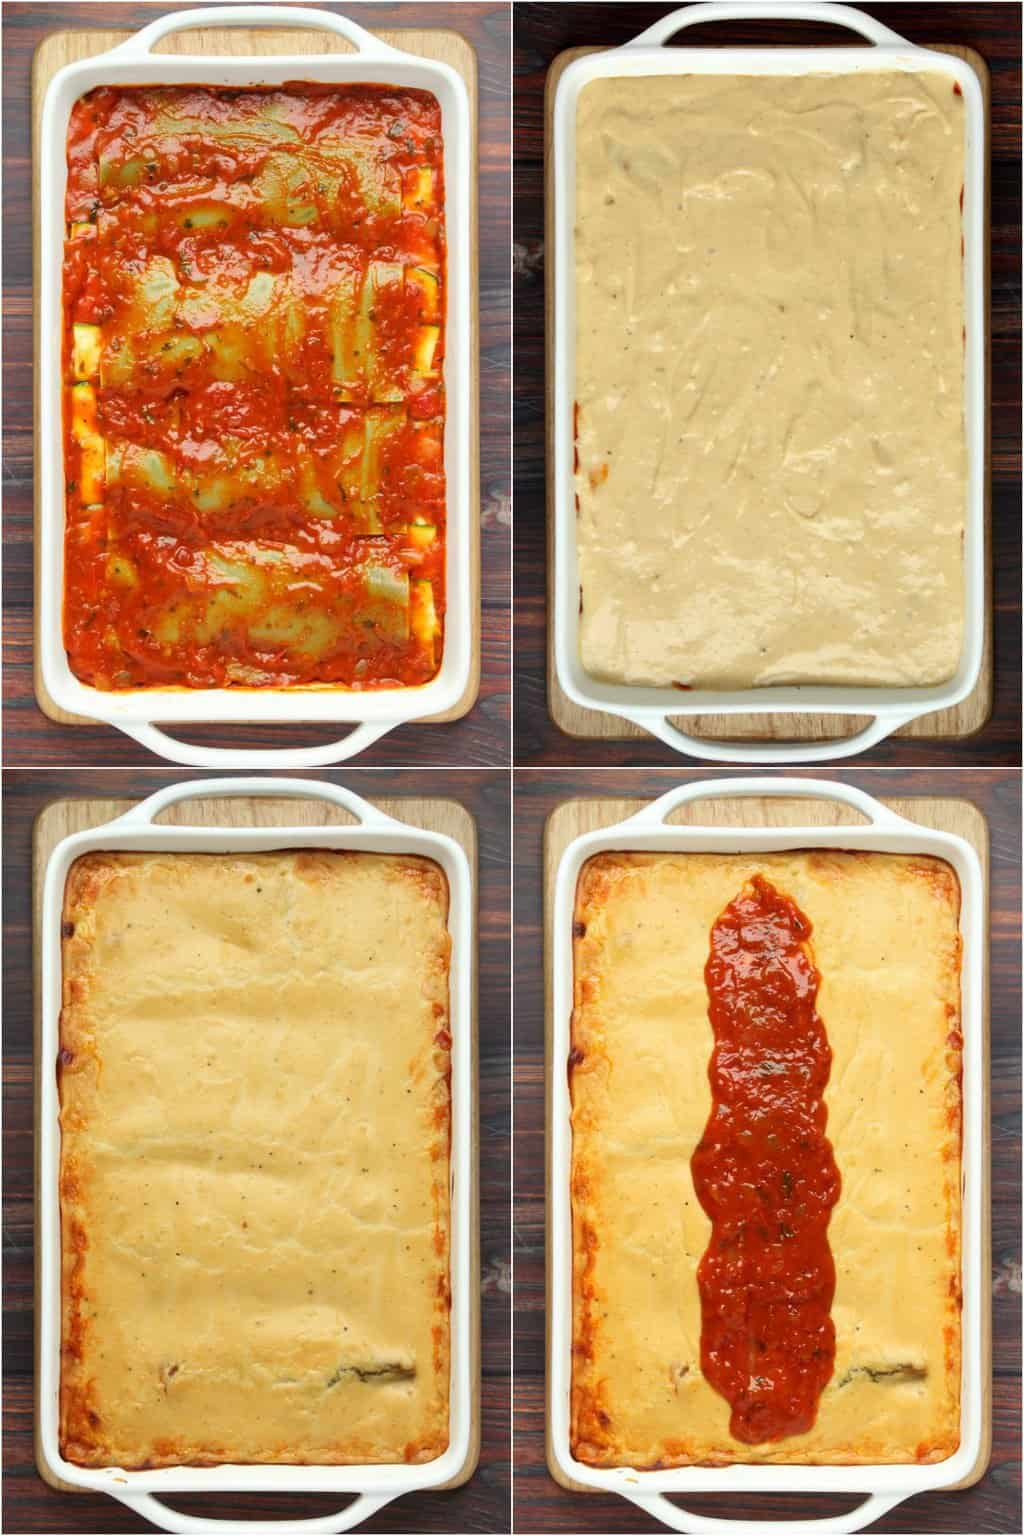 Step by step process photo collage of completing a vegan lasagna recipe.